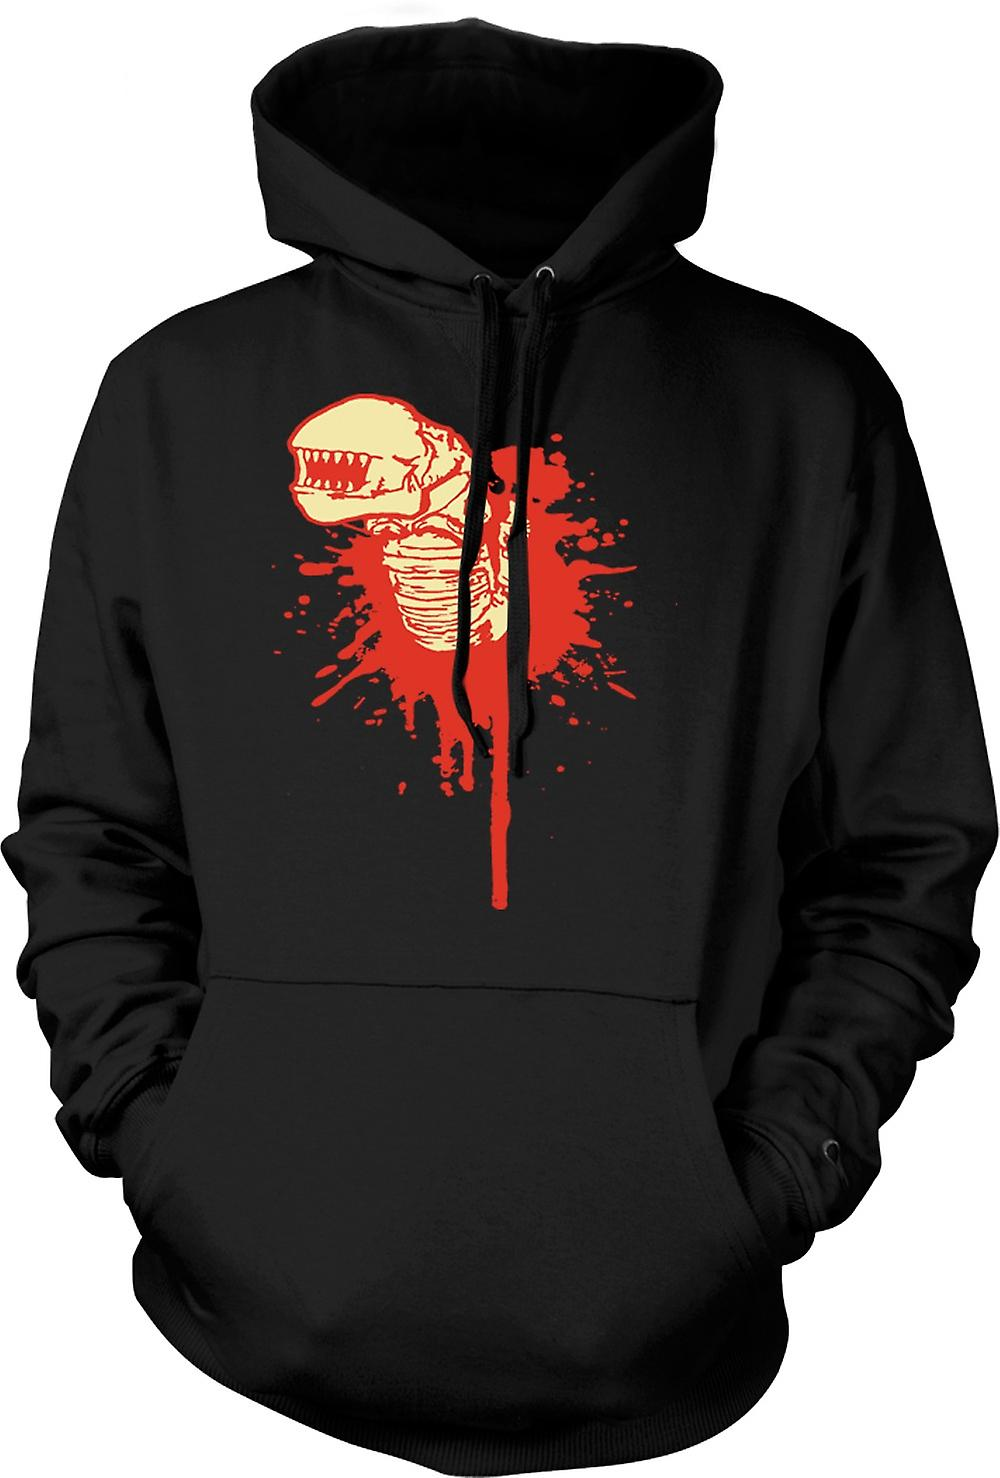 Mens Hoodie - Alien Face Hugger - Horror - Movie